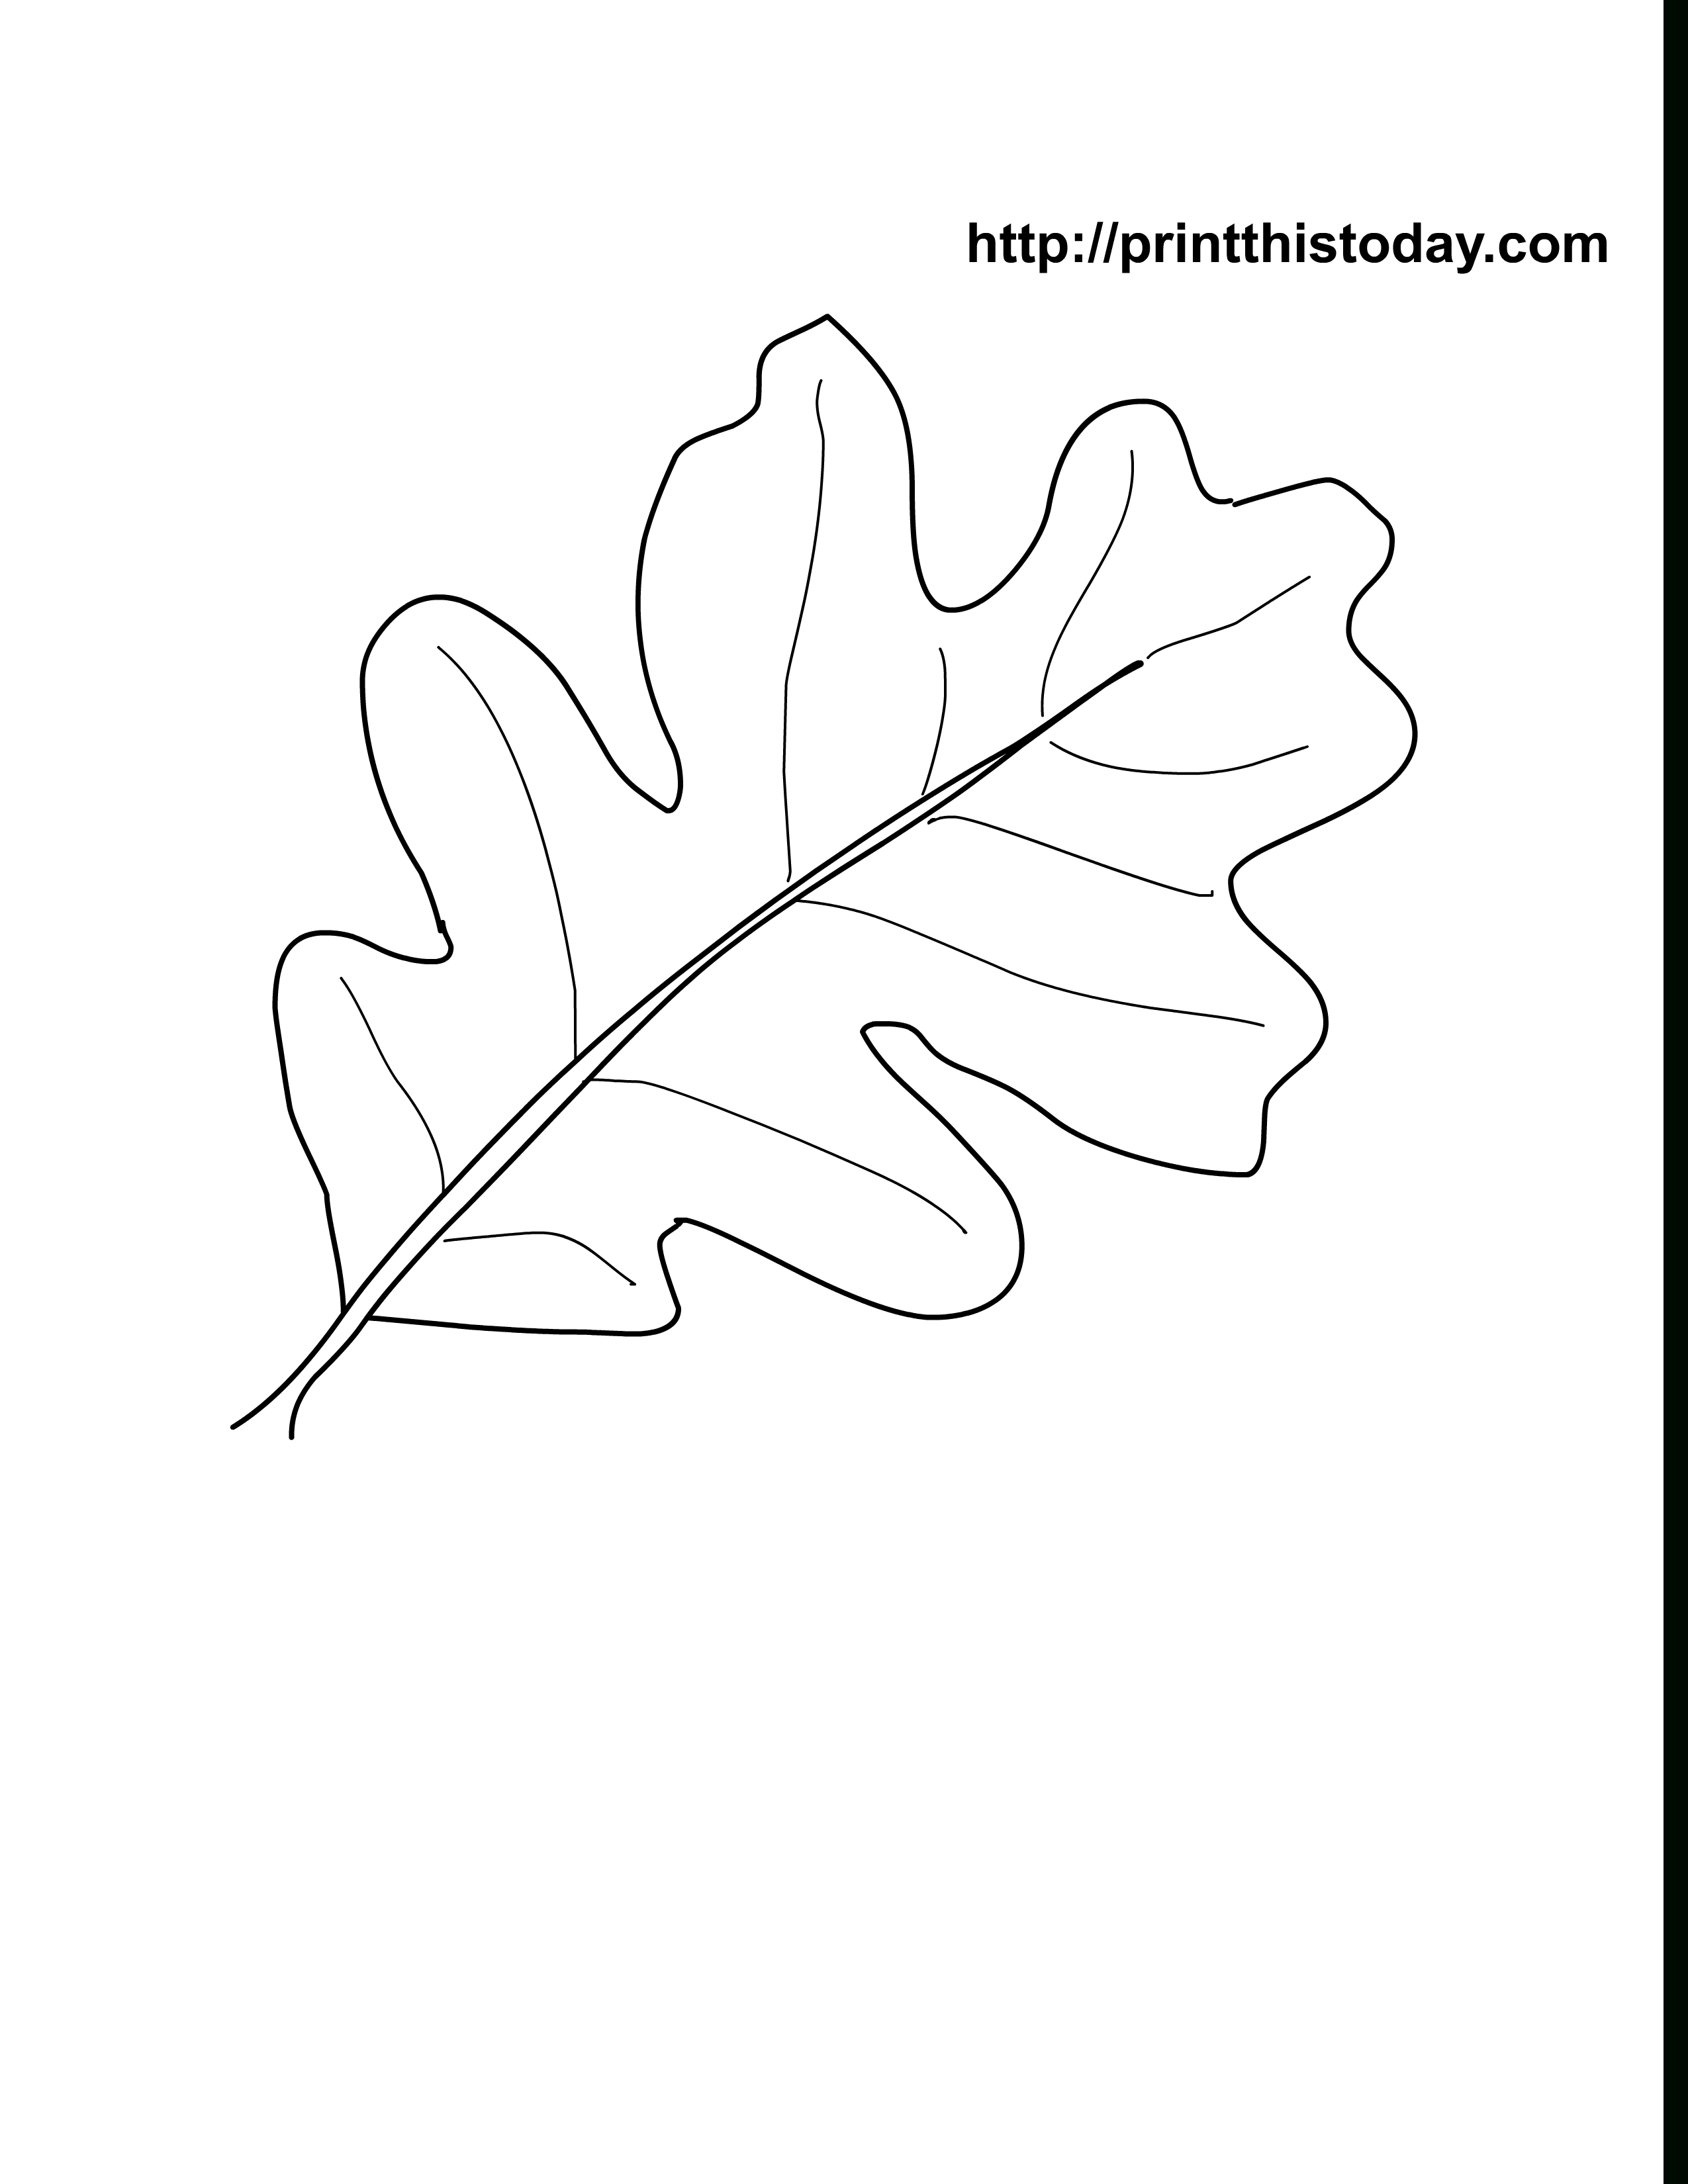 Oak Leaves Coloring Pages Printable | Craft Ideas | Leaf Coloring - Free Printable Leaf Template